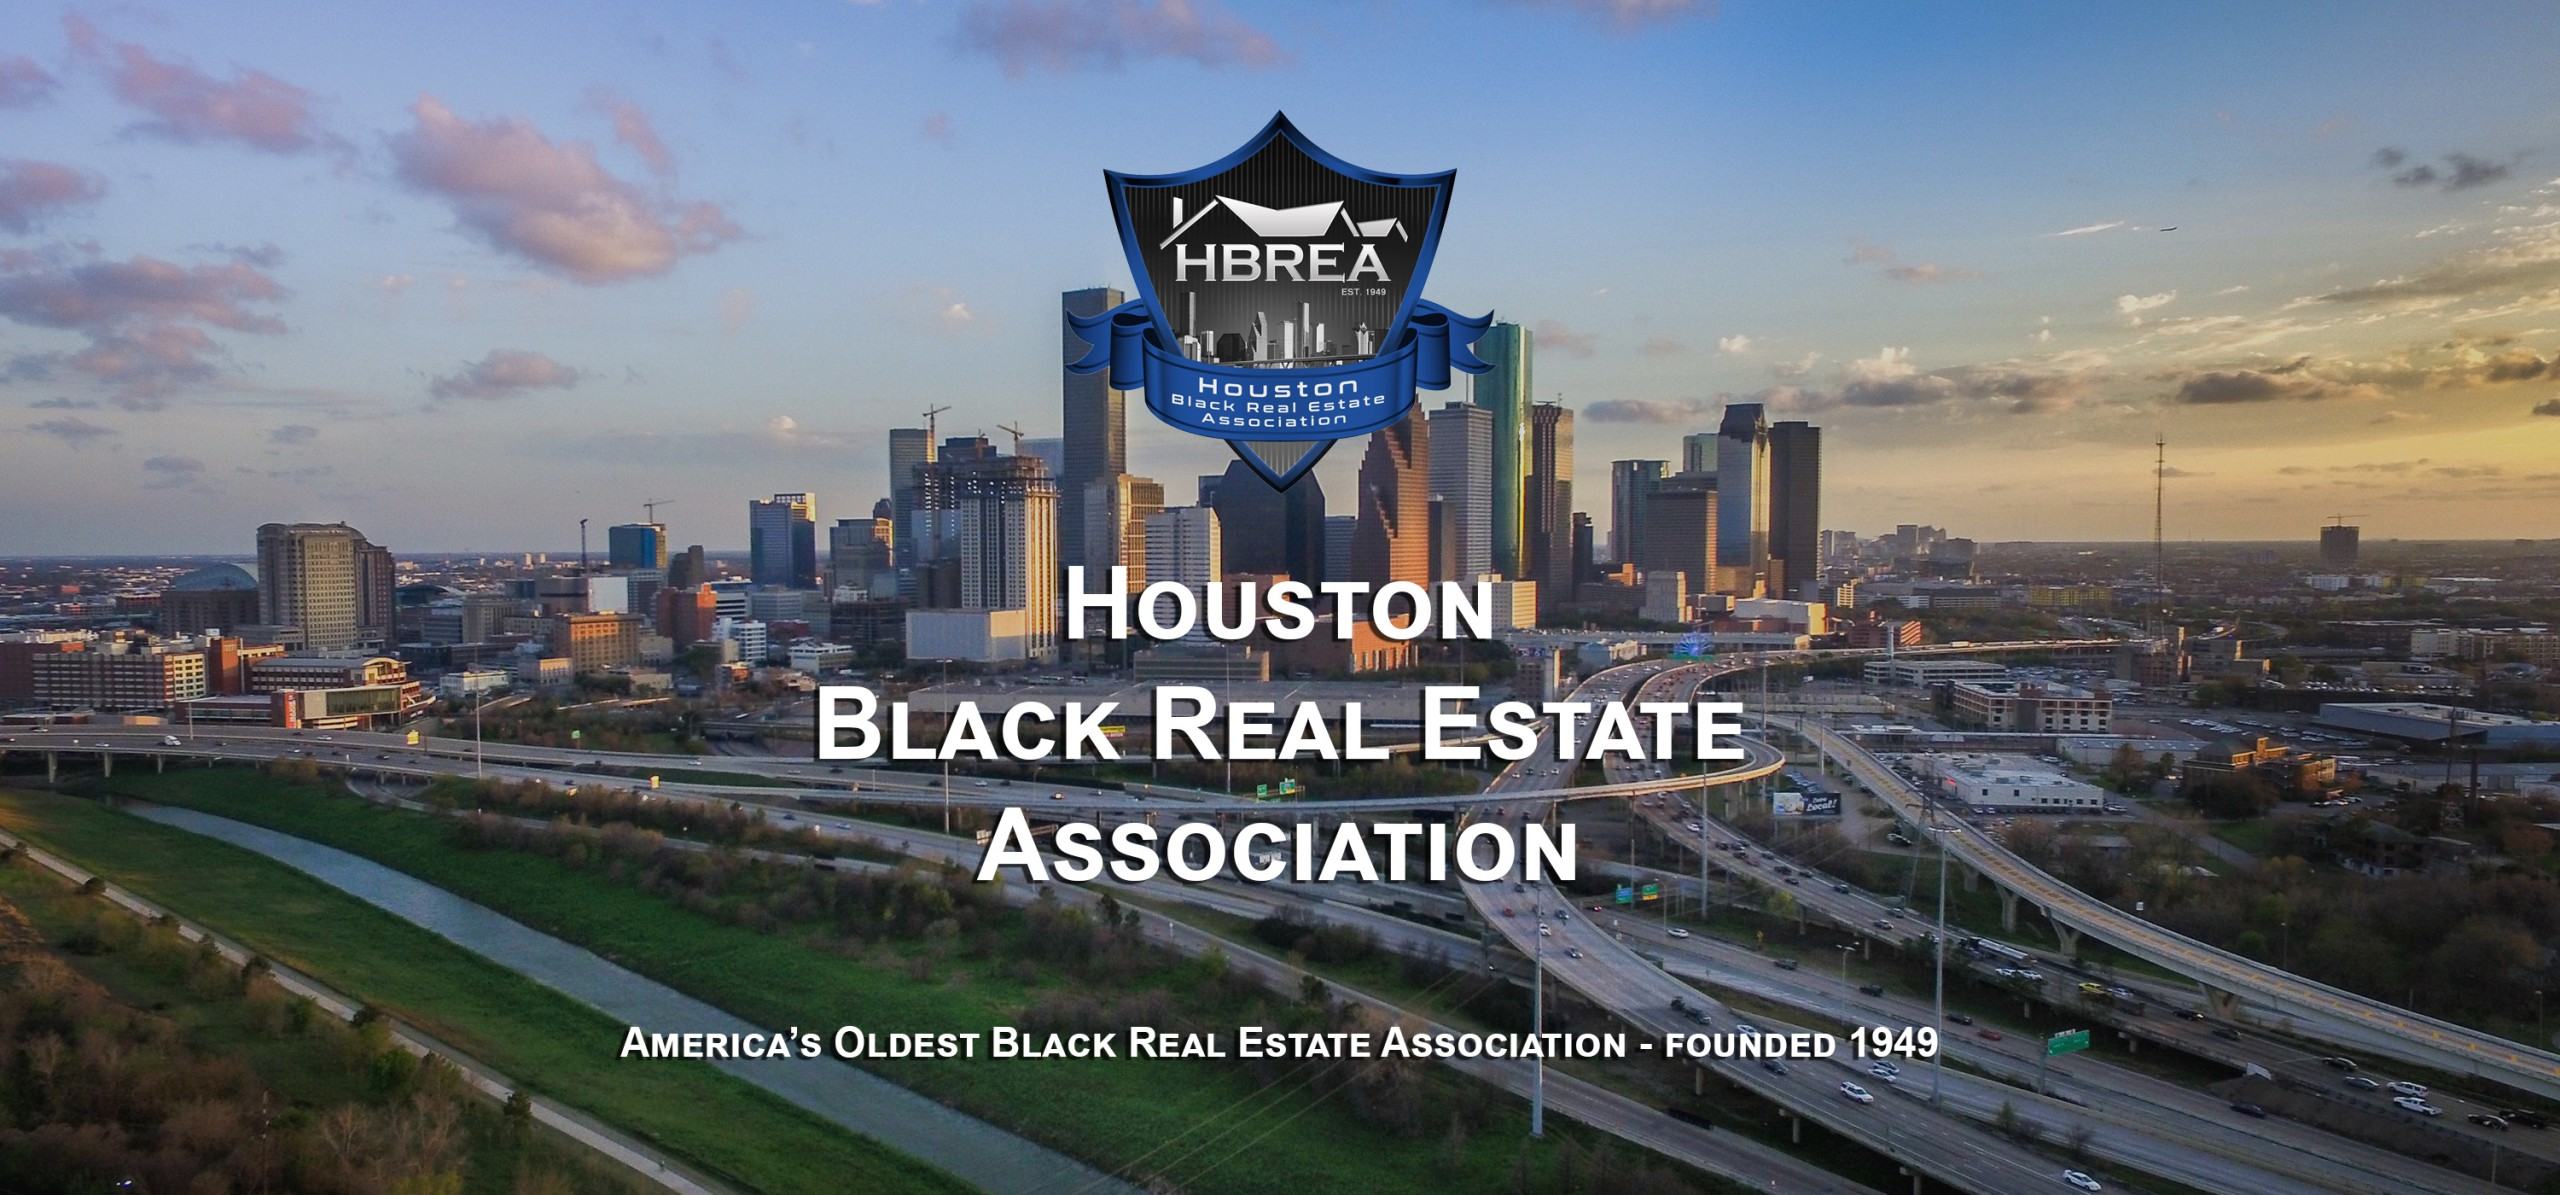 HBREA - Houston Black Real Estate Association